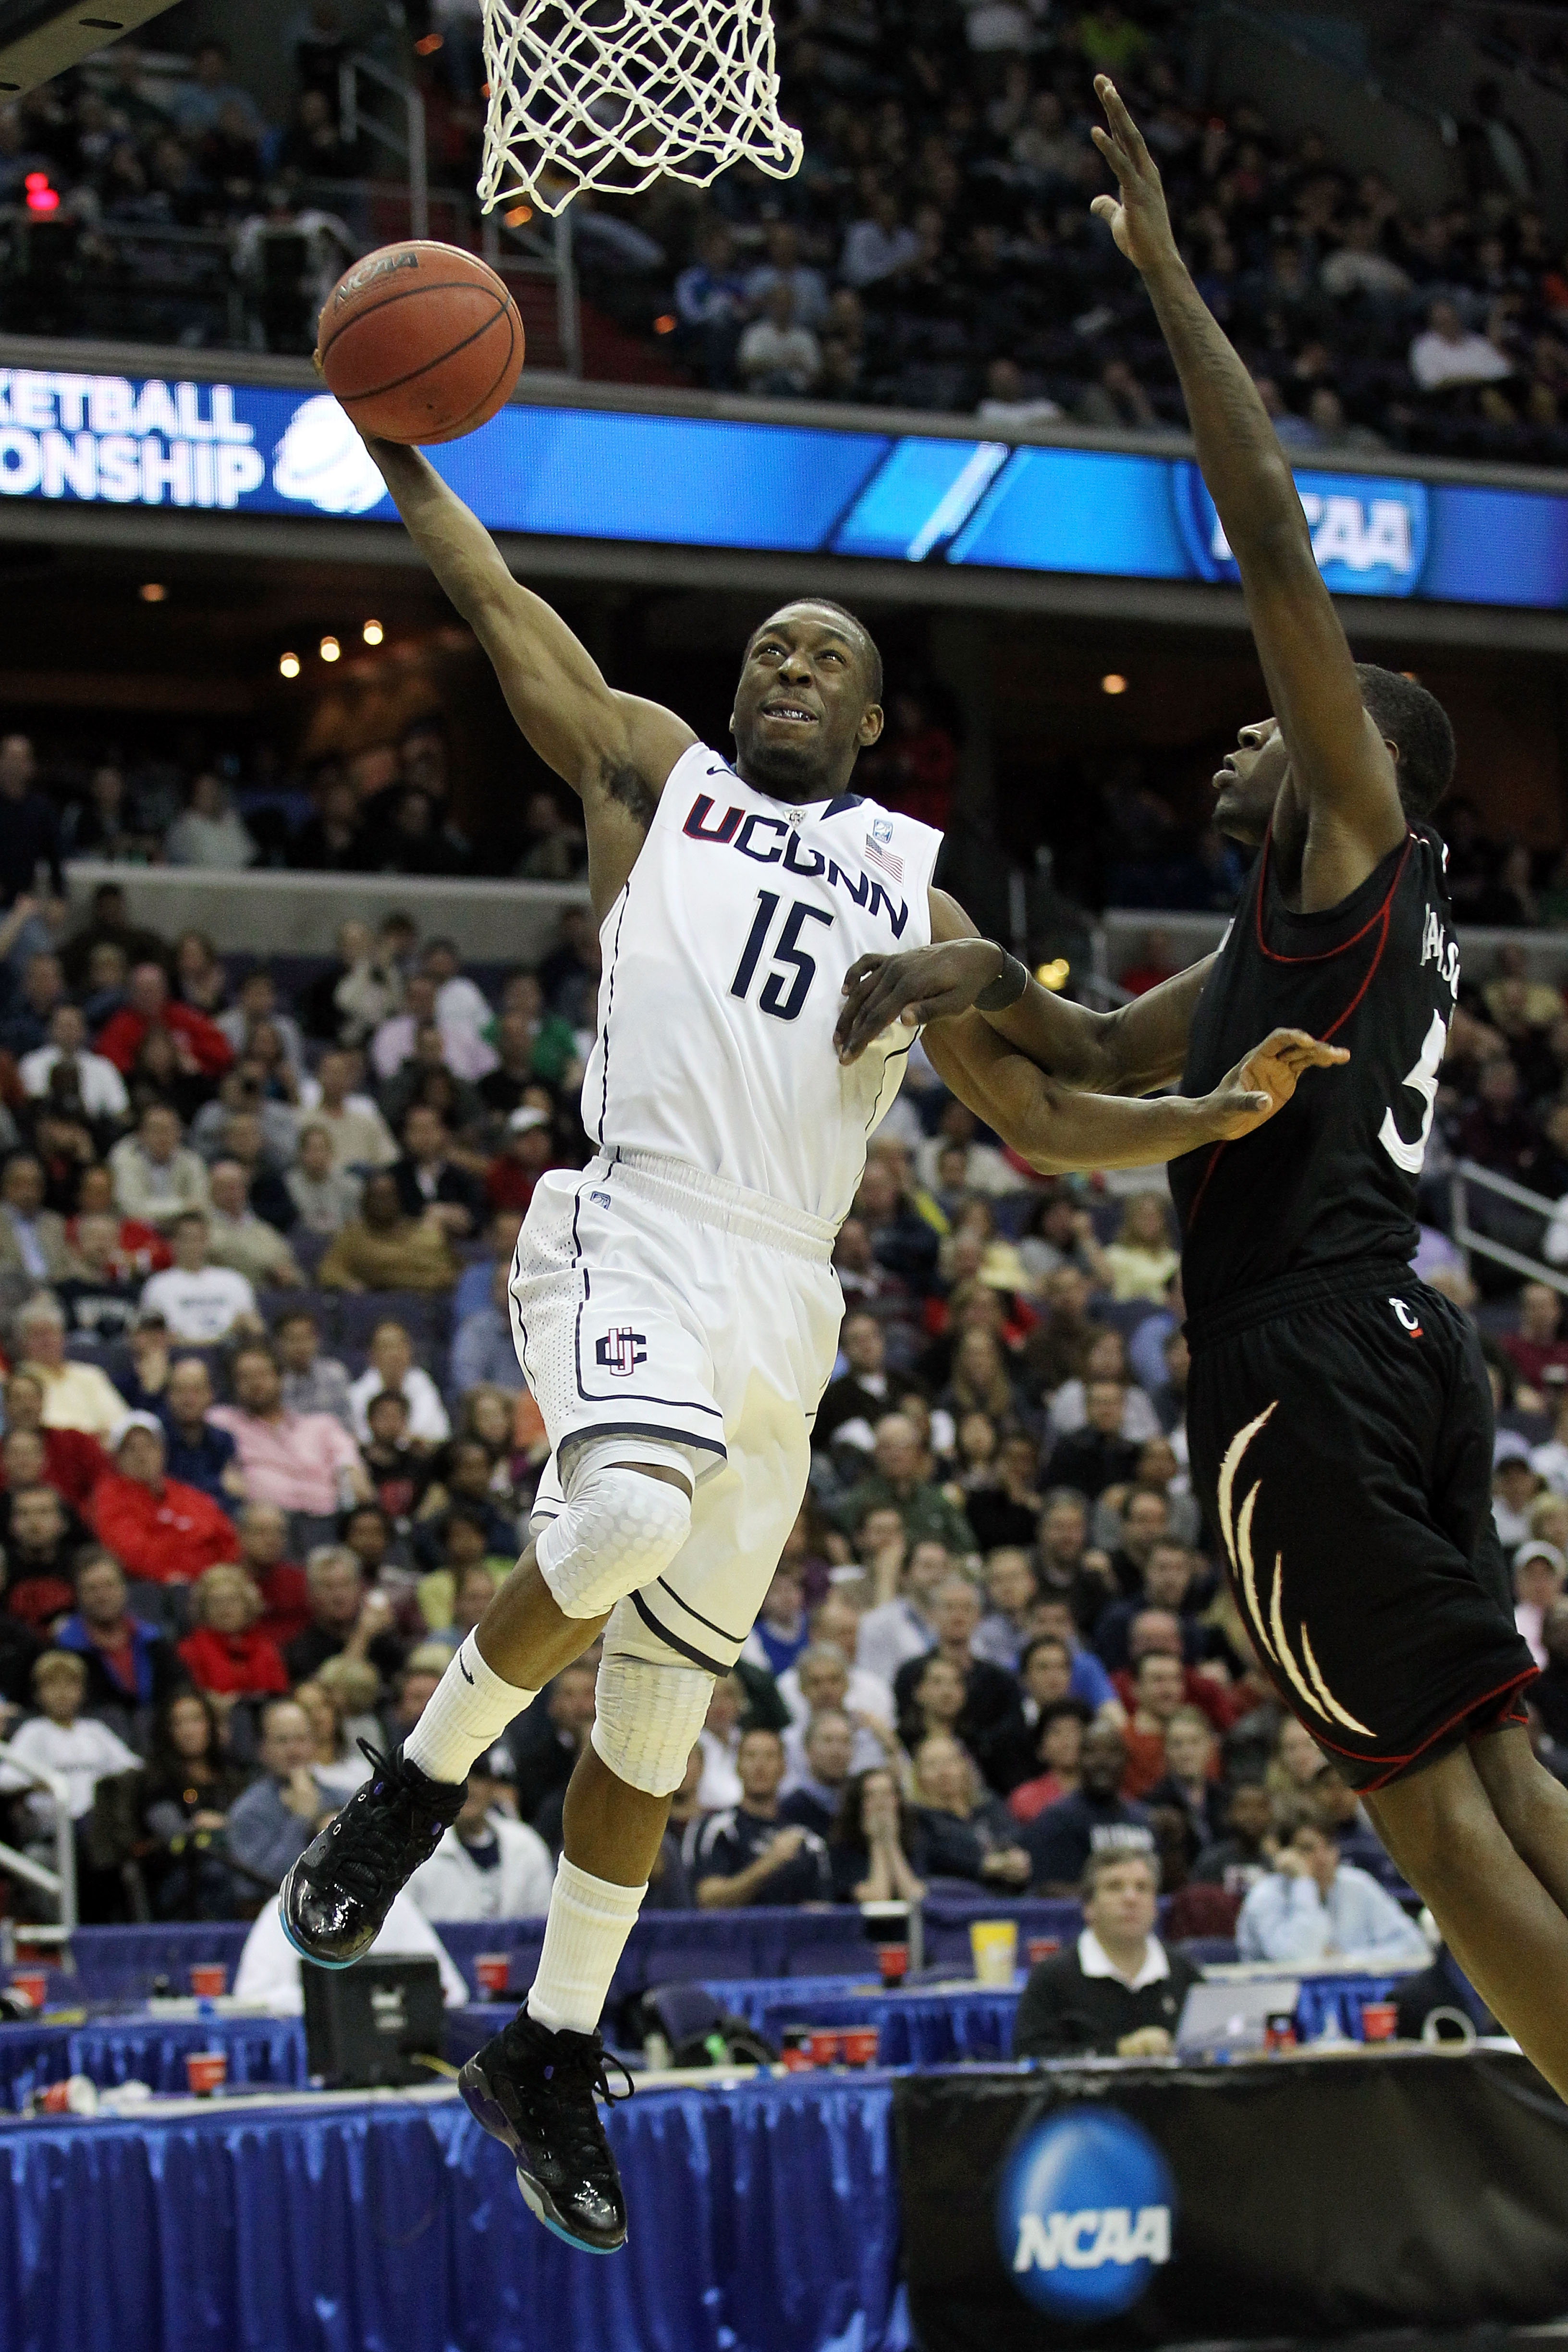 WASHINGTON - MARCH 19:  Kemba Walker #15 of the Connecticut Huskies goes in for a layup against the Cincinnati Bearcats during the third round of the 2011 NCAA men's basketball tournament at Verizon Center on March 19, 2011 in Washington, DC.  (Photo by N